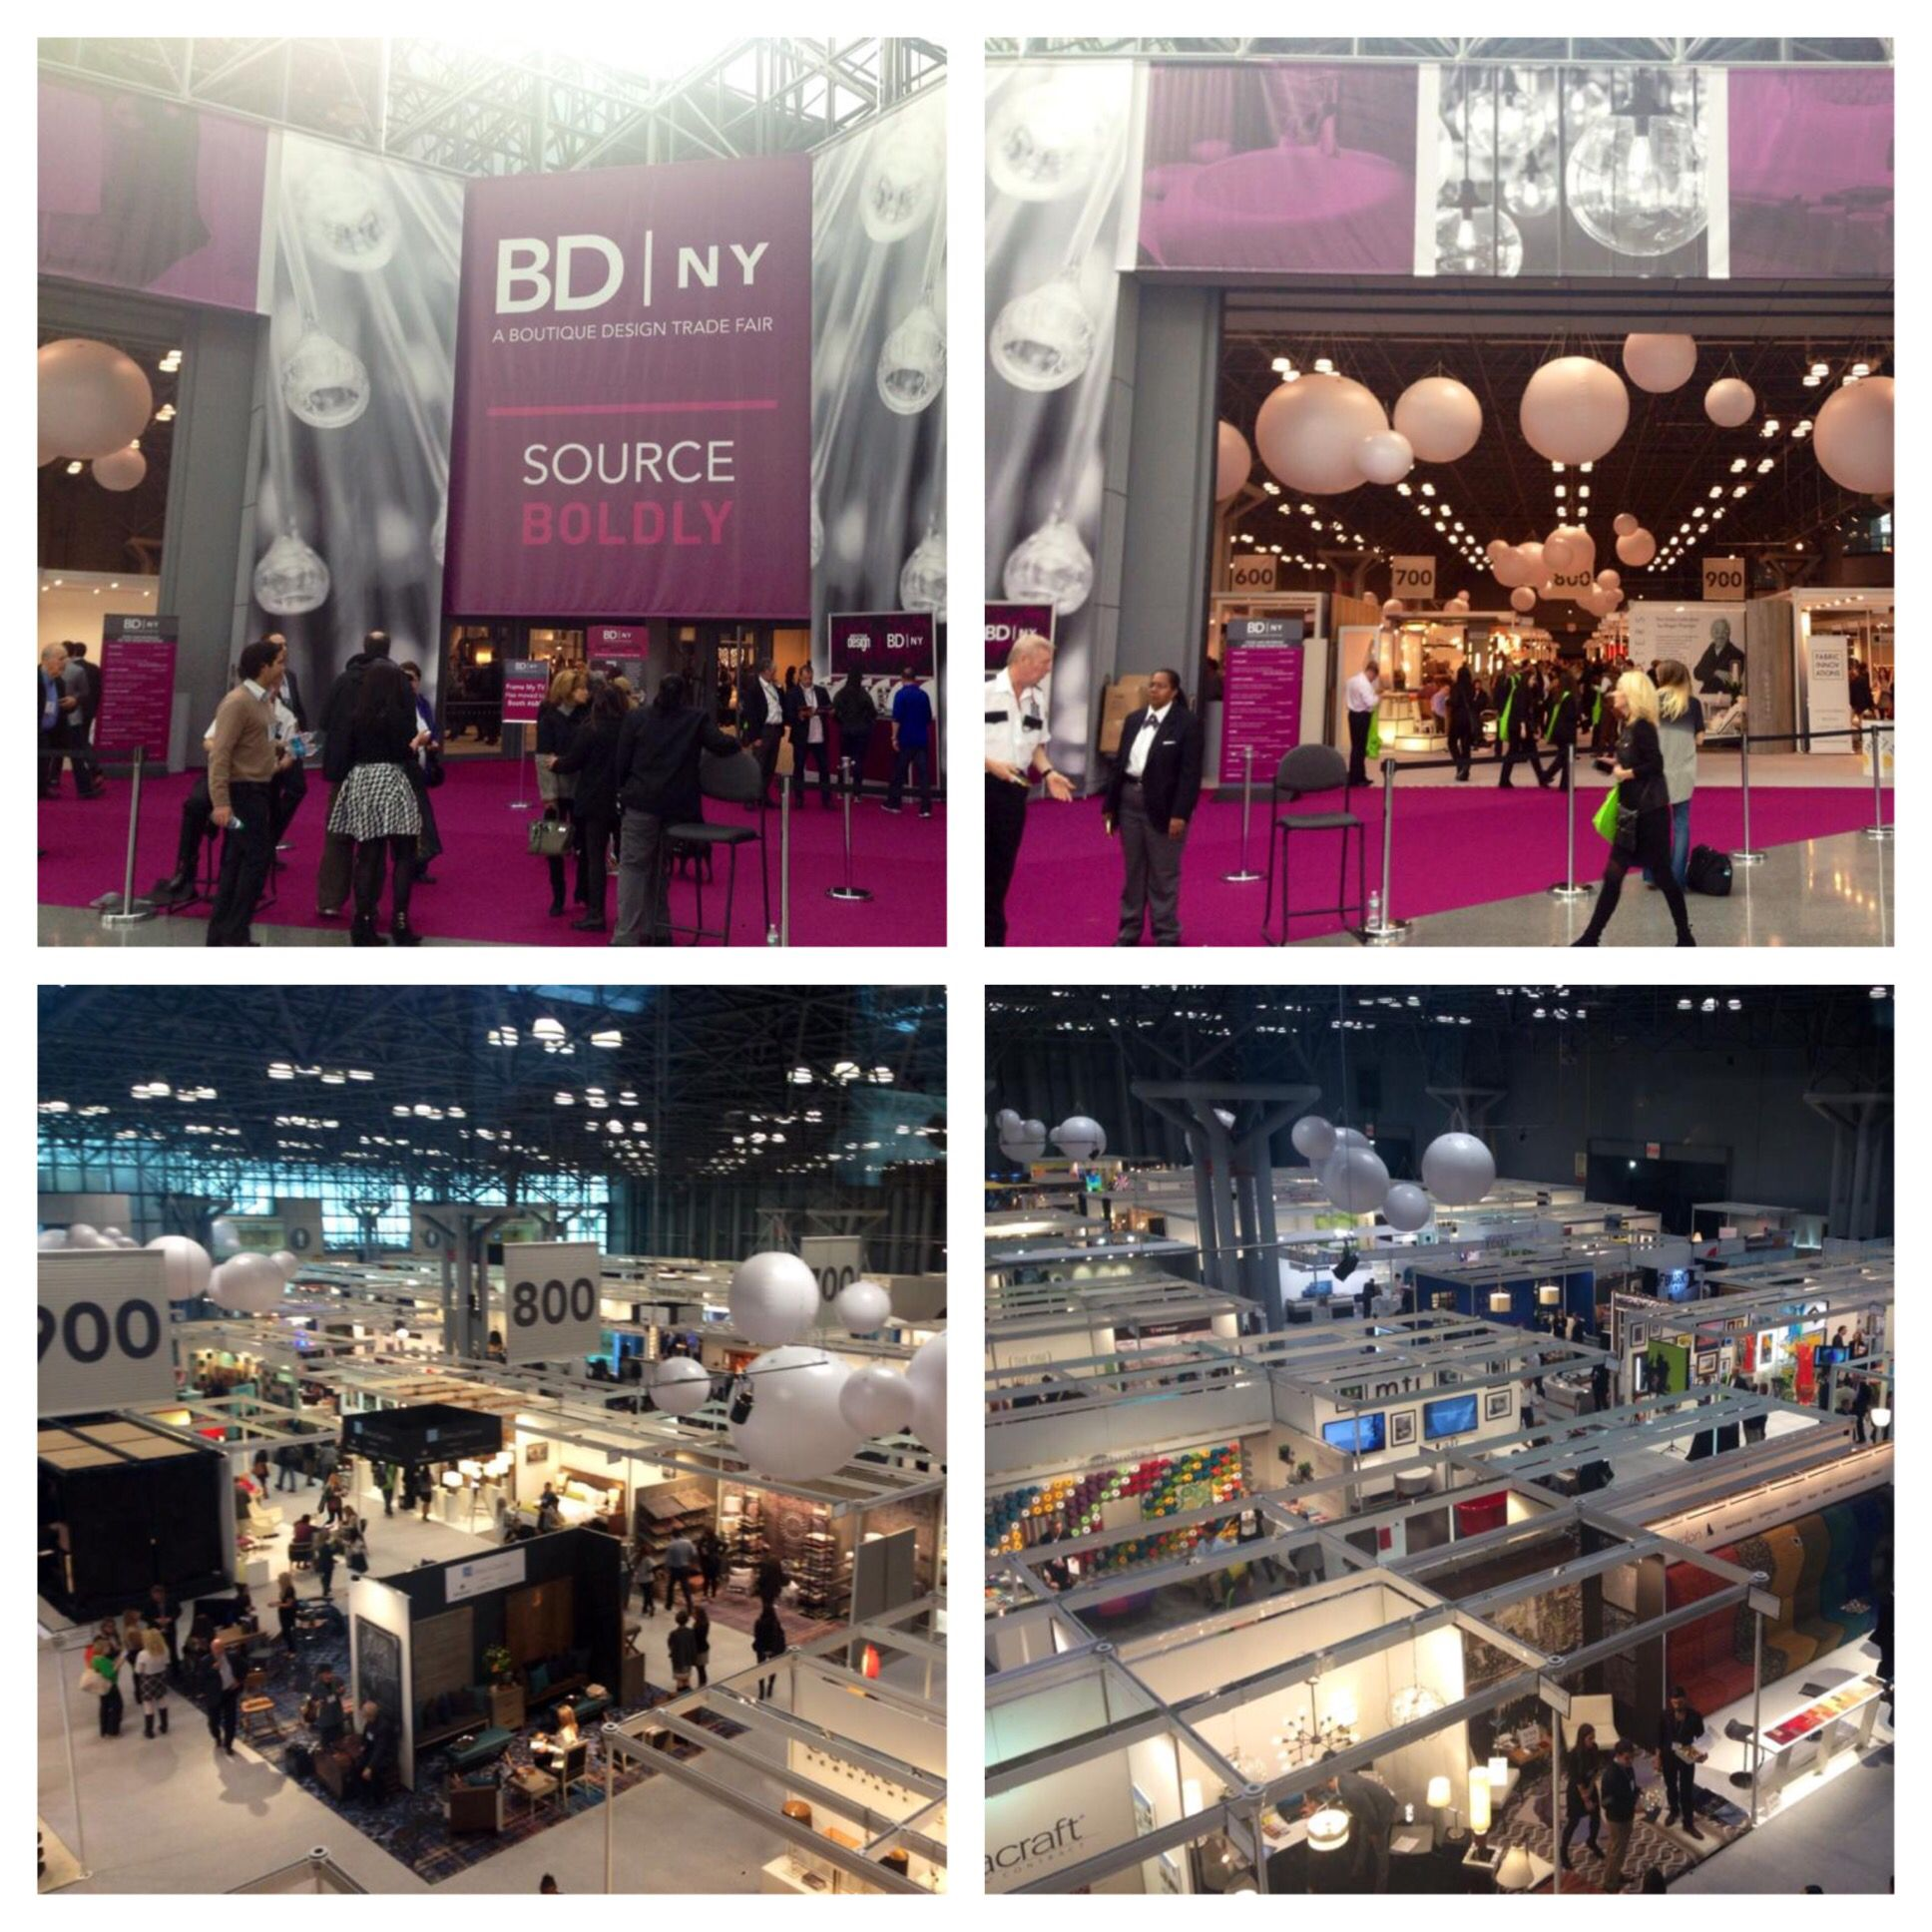 The Boutique Design Trade Fair BDNY is looking gorgeous at the